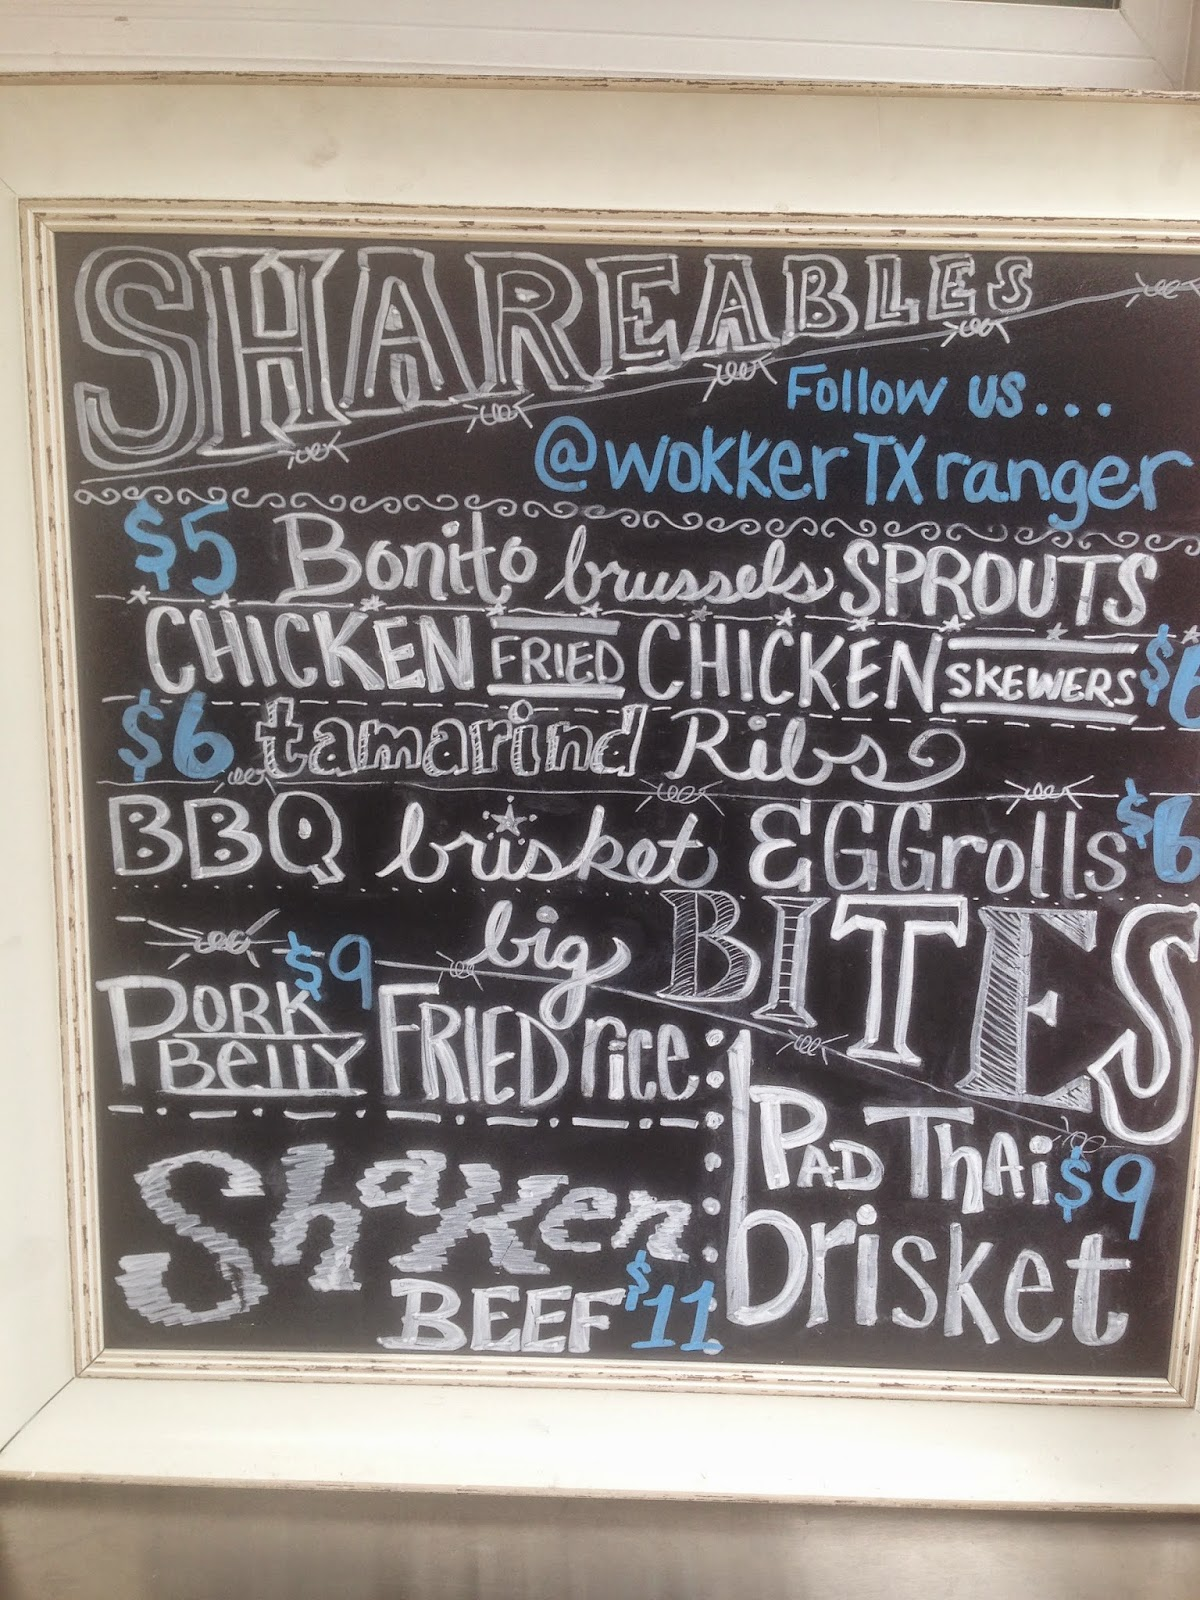 Wokker Texas Ranger Food Truck Houston TX Menu